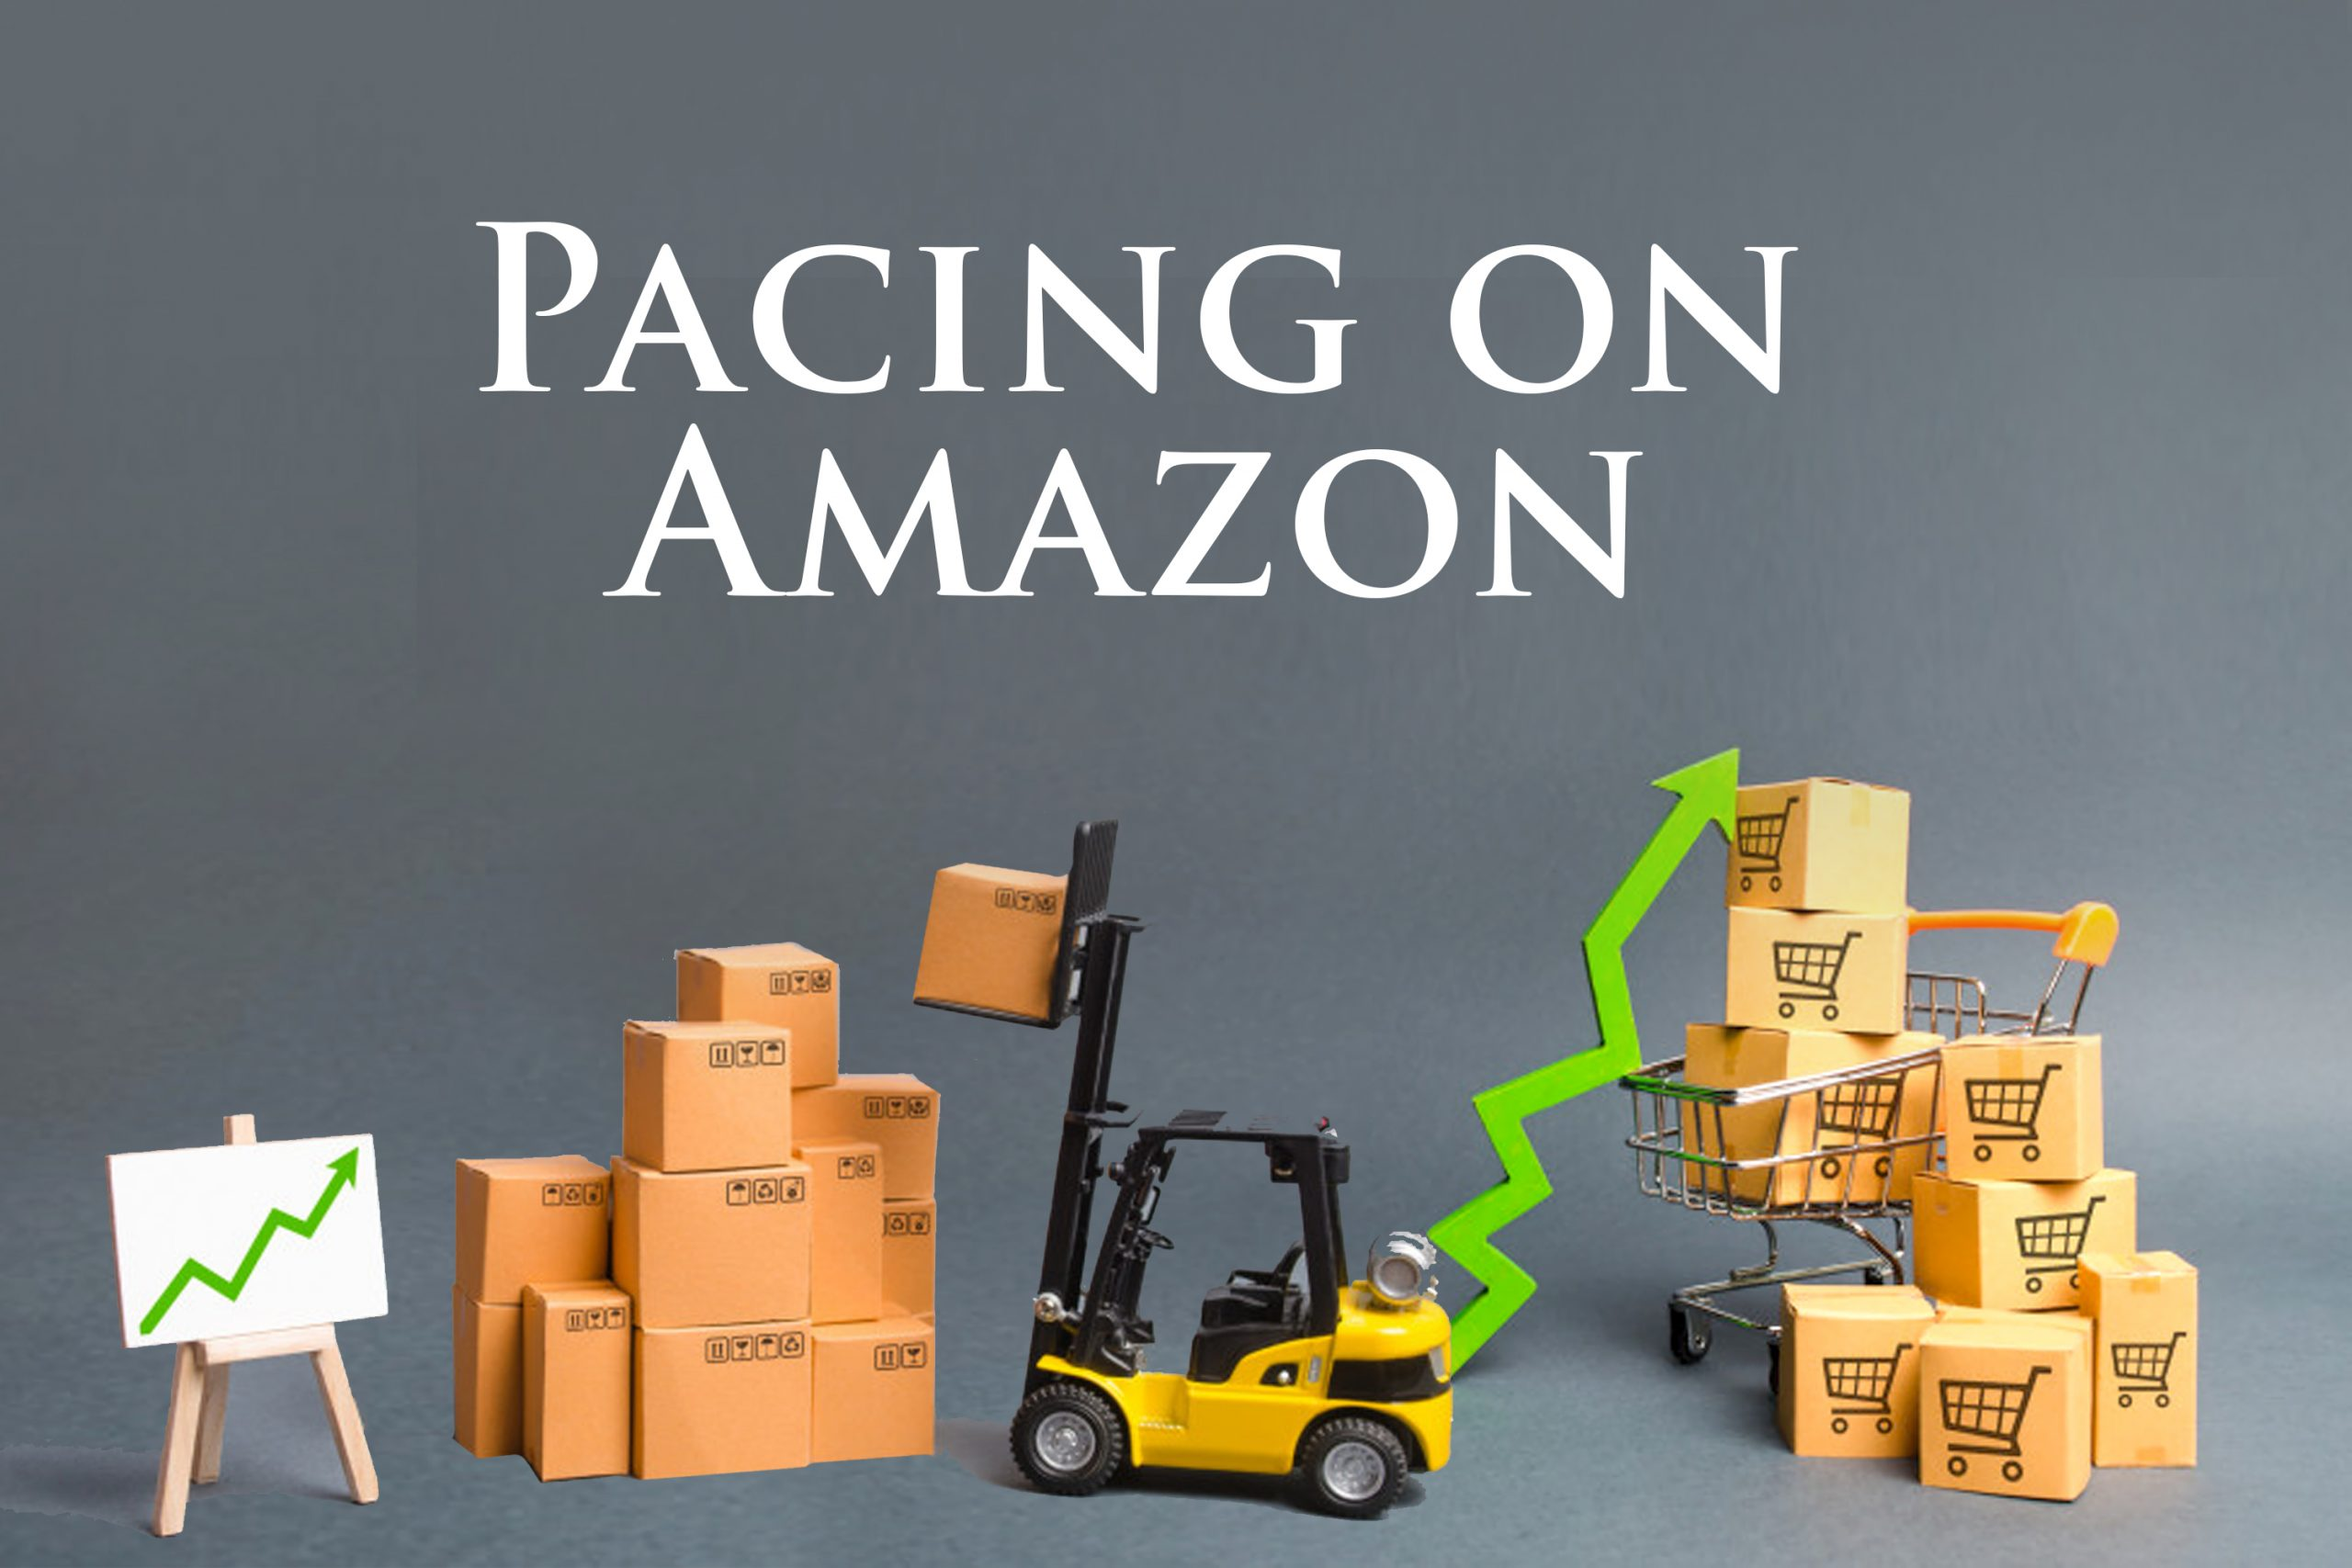 It's All About Pacing on Amazon